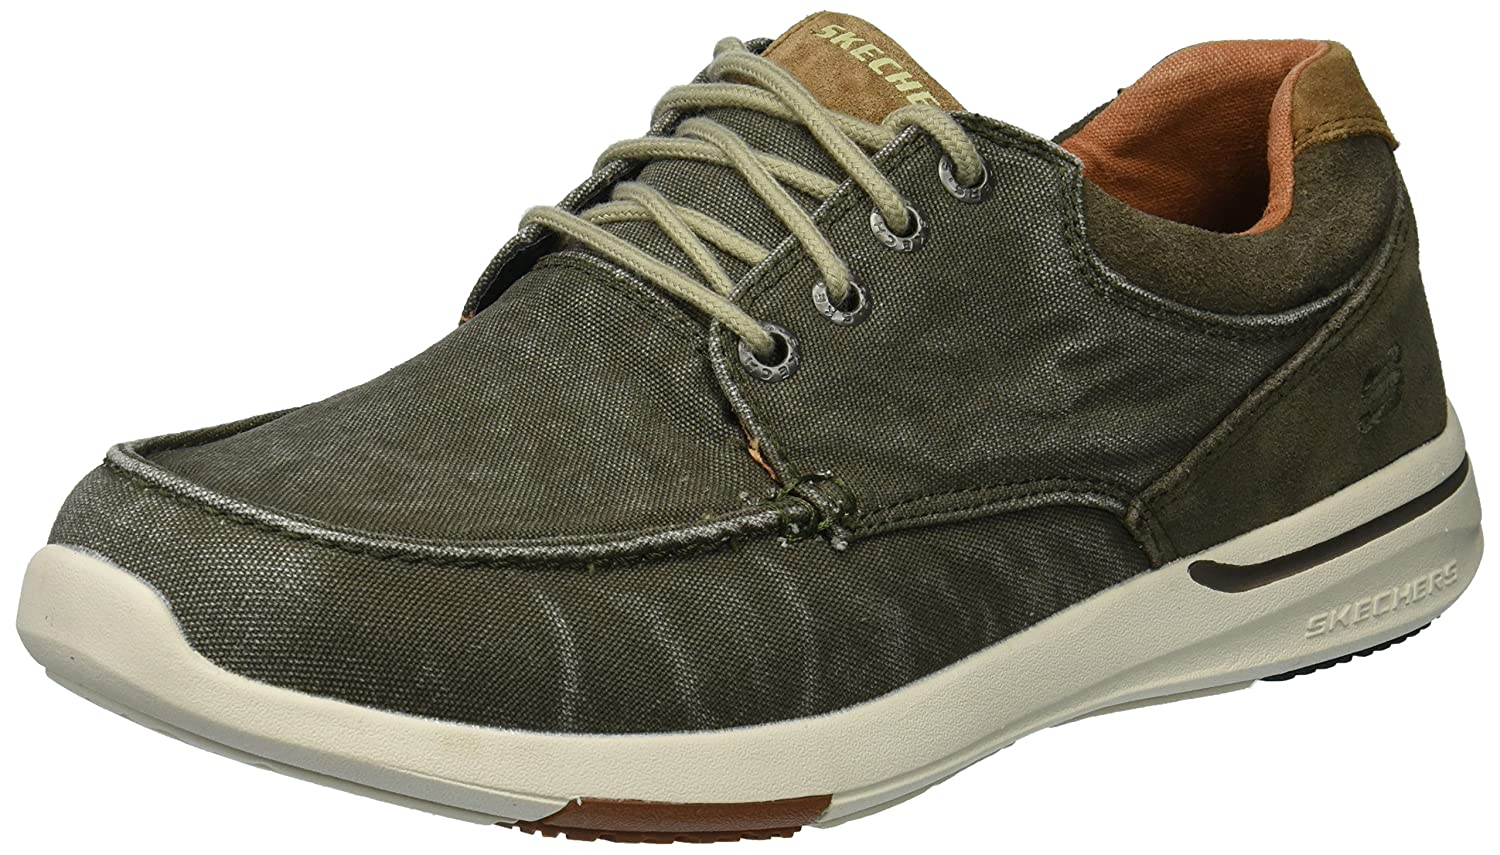 Skechers Men's Relaxed Fit elent arven Boat Shoe